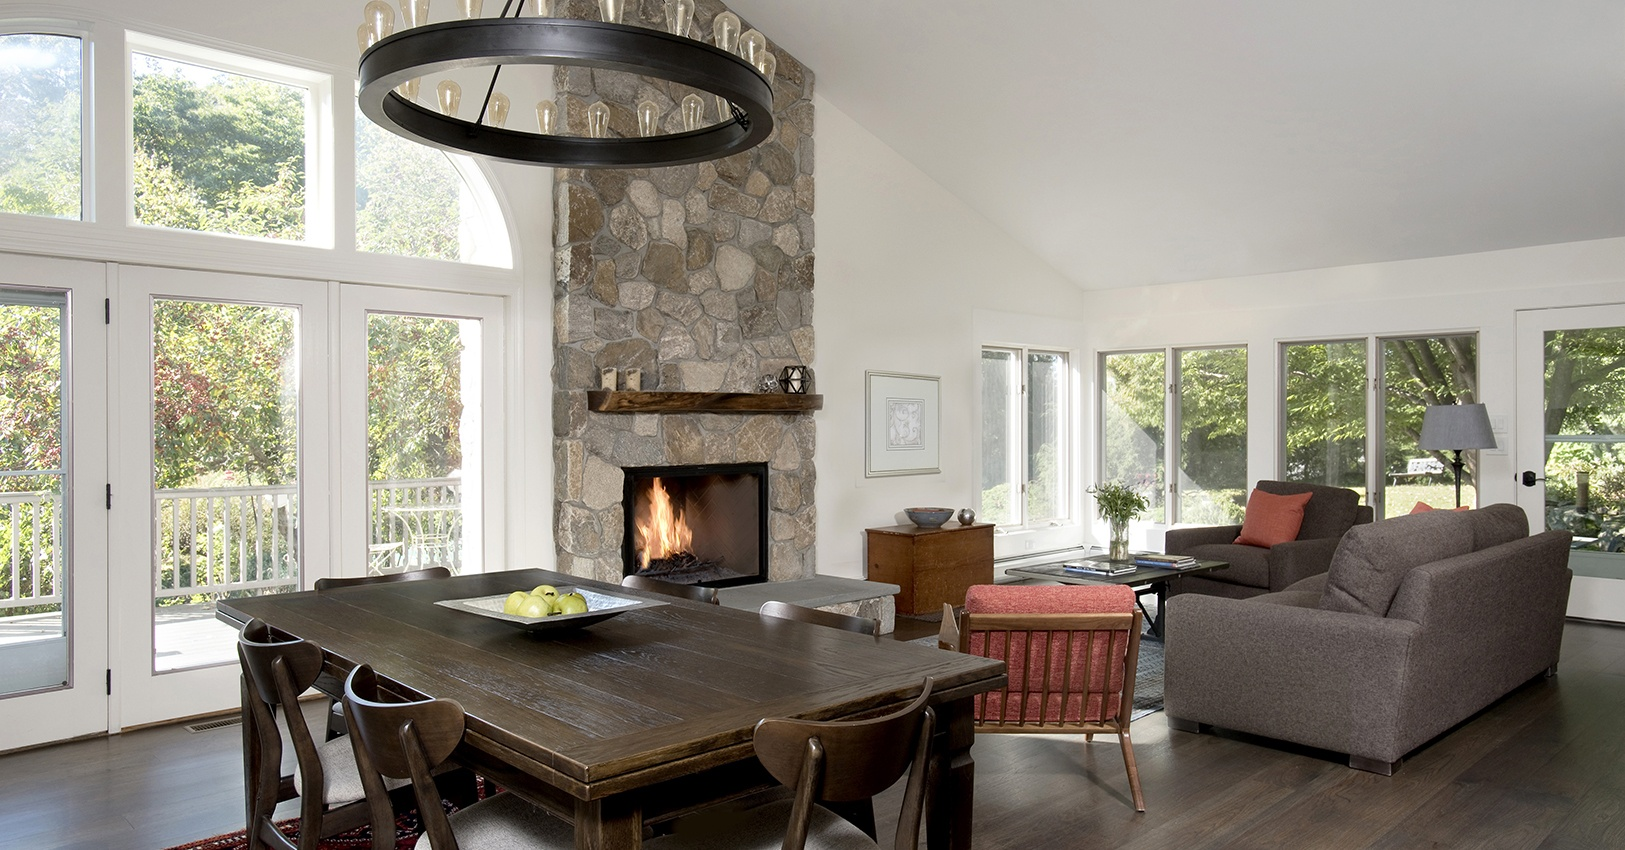 Ridgefield home makeover by Clark Construction with great room and sunroom conversion